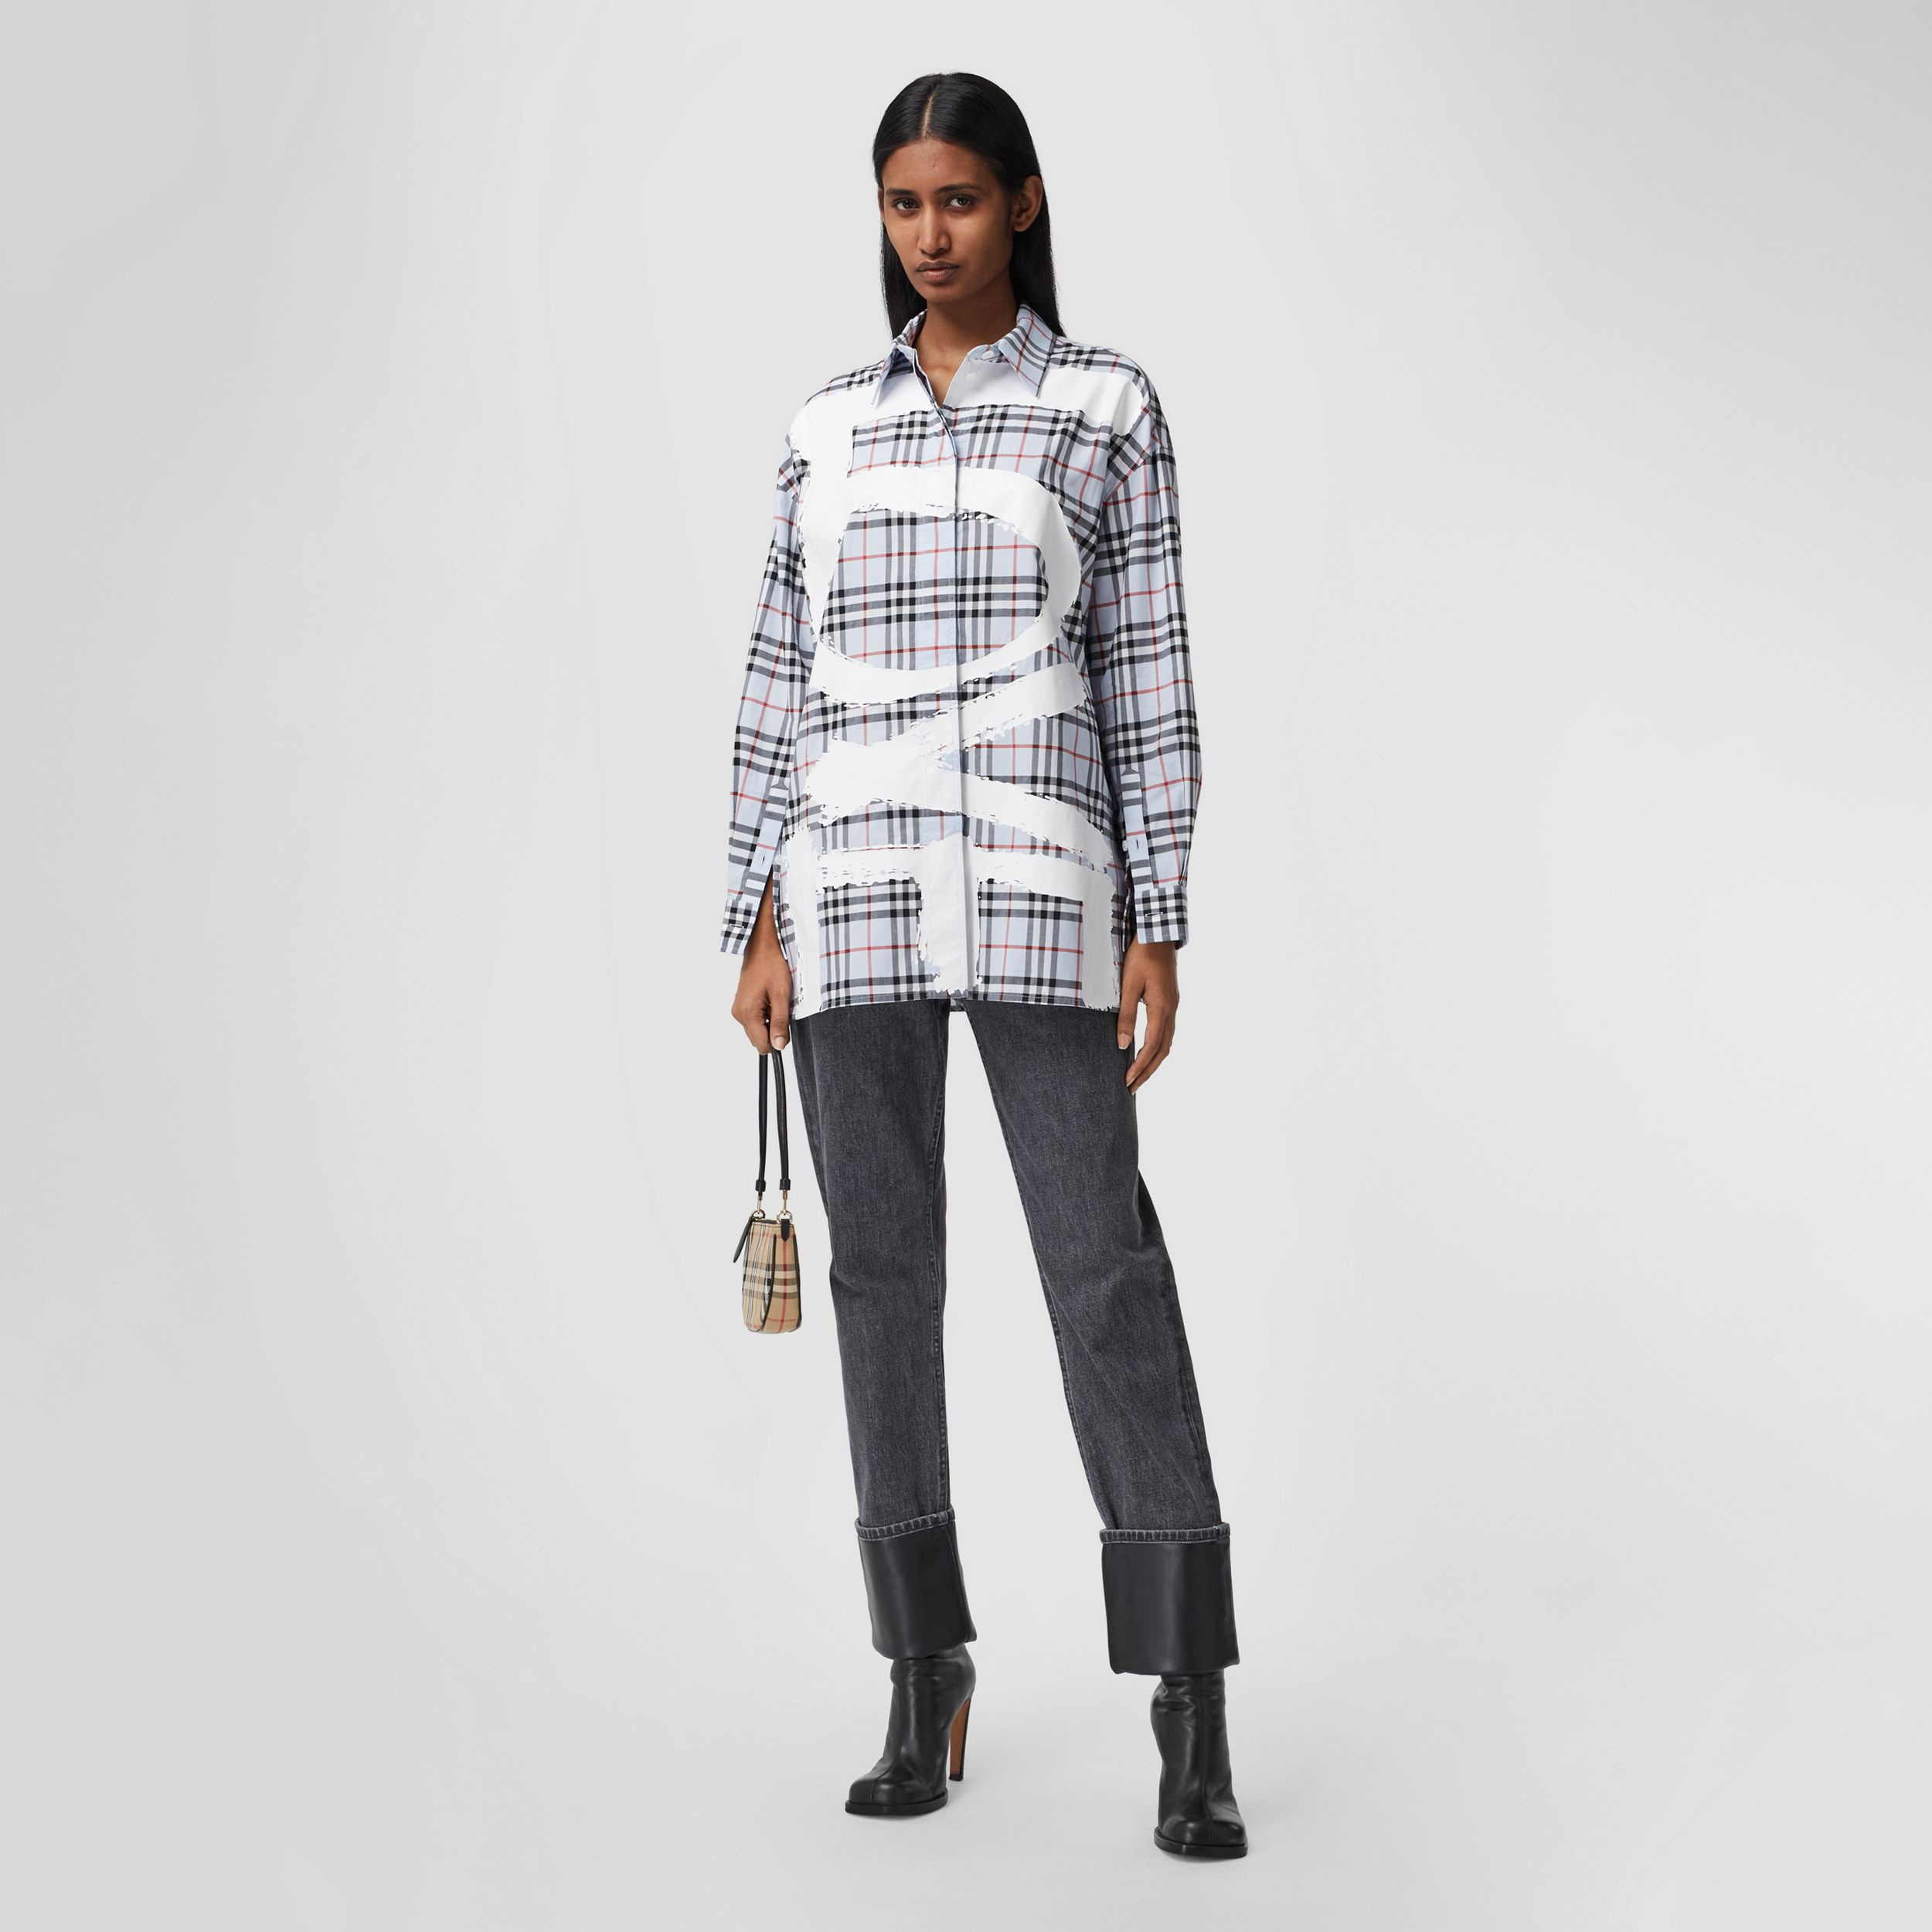 Love Print Vintage Check Cotton Oversized Shirt – Online Exclusive in Pale Blue - Women | Burberry Australia - 1